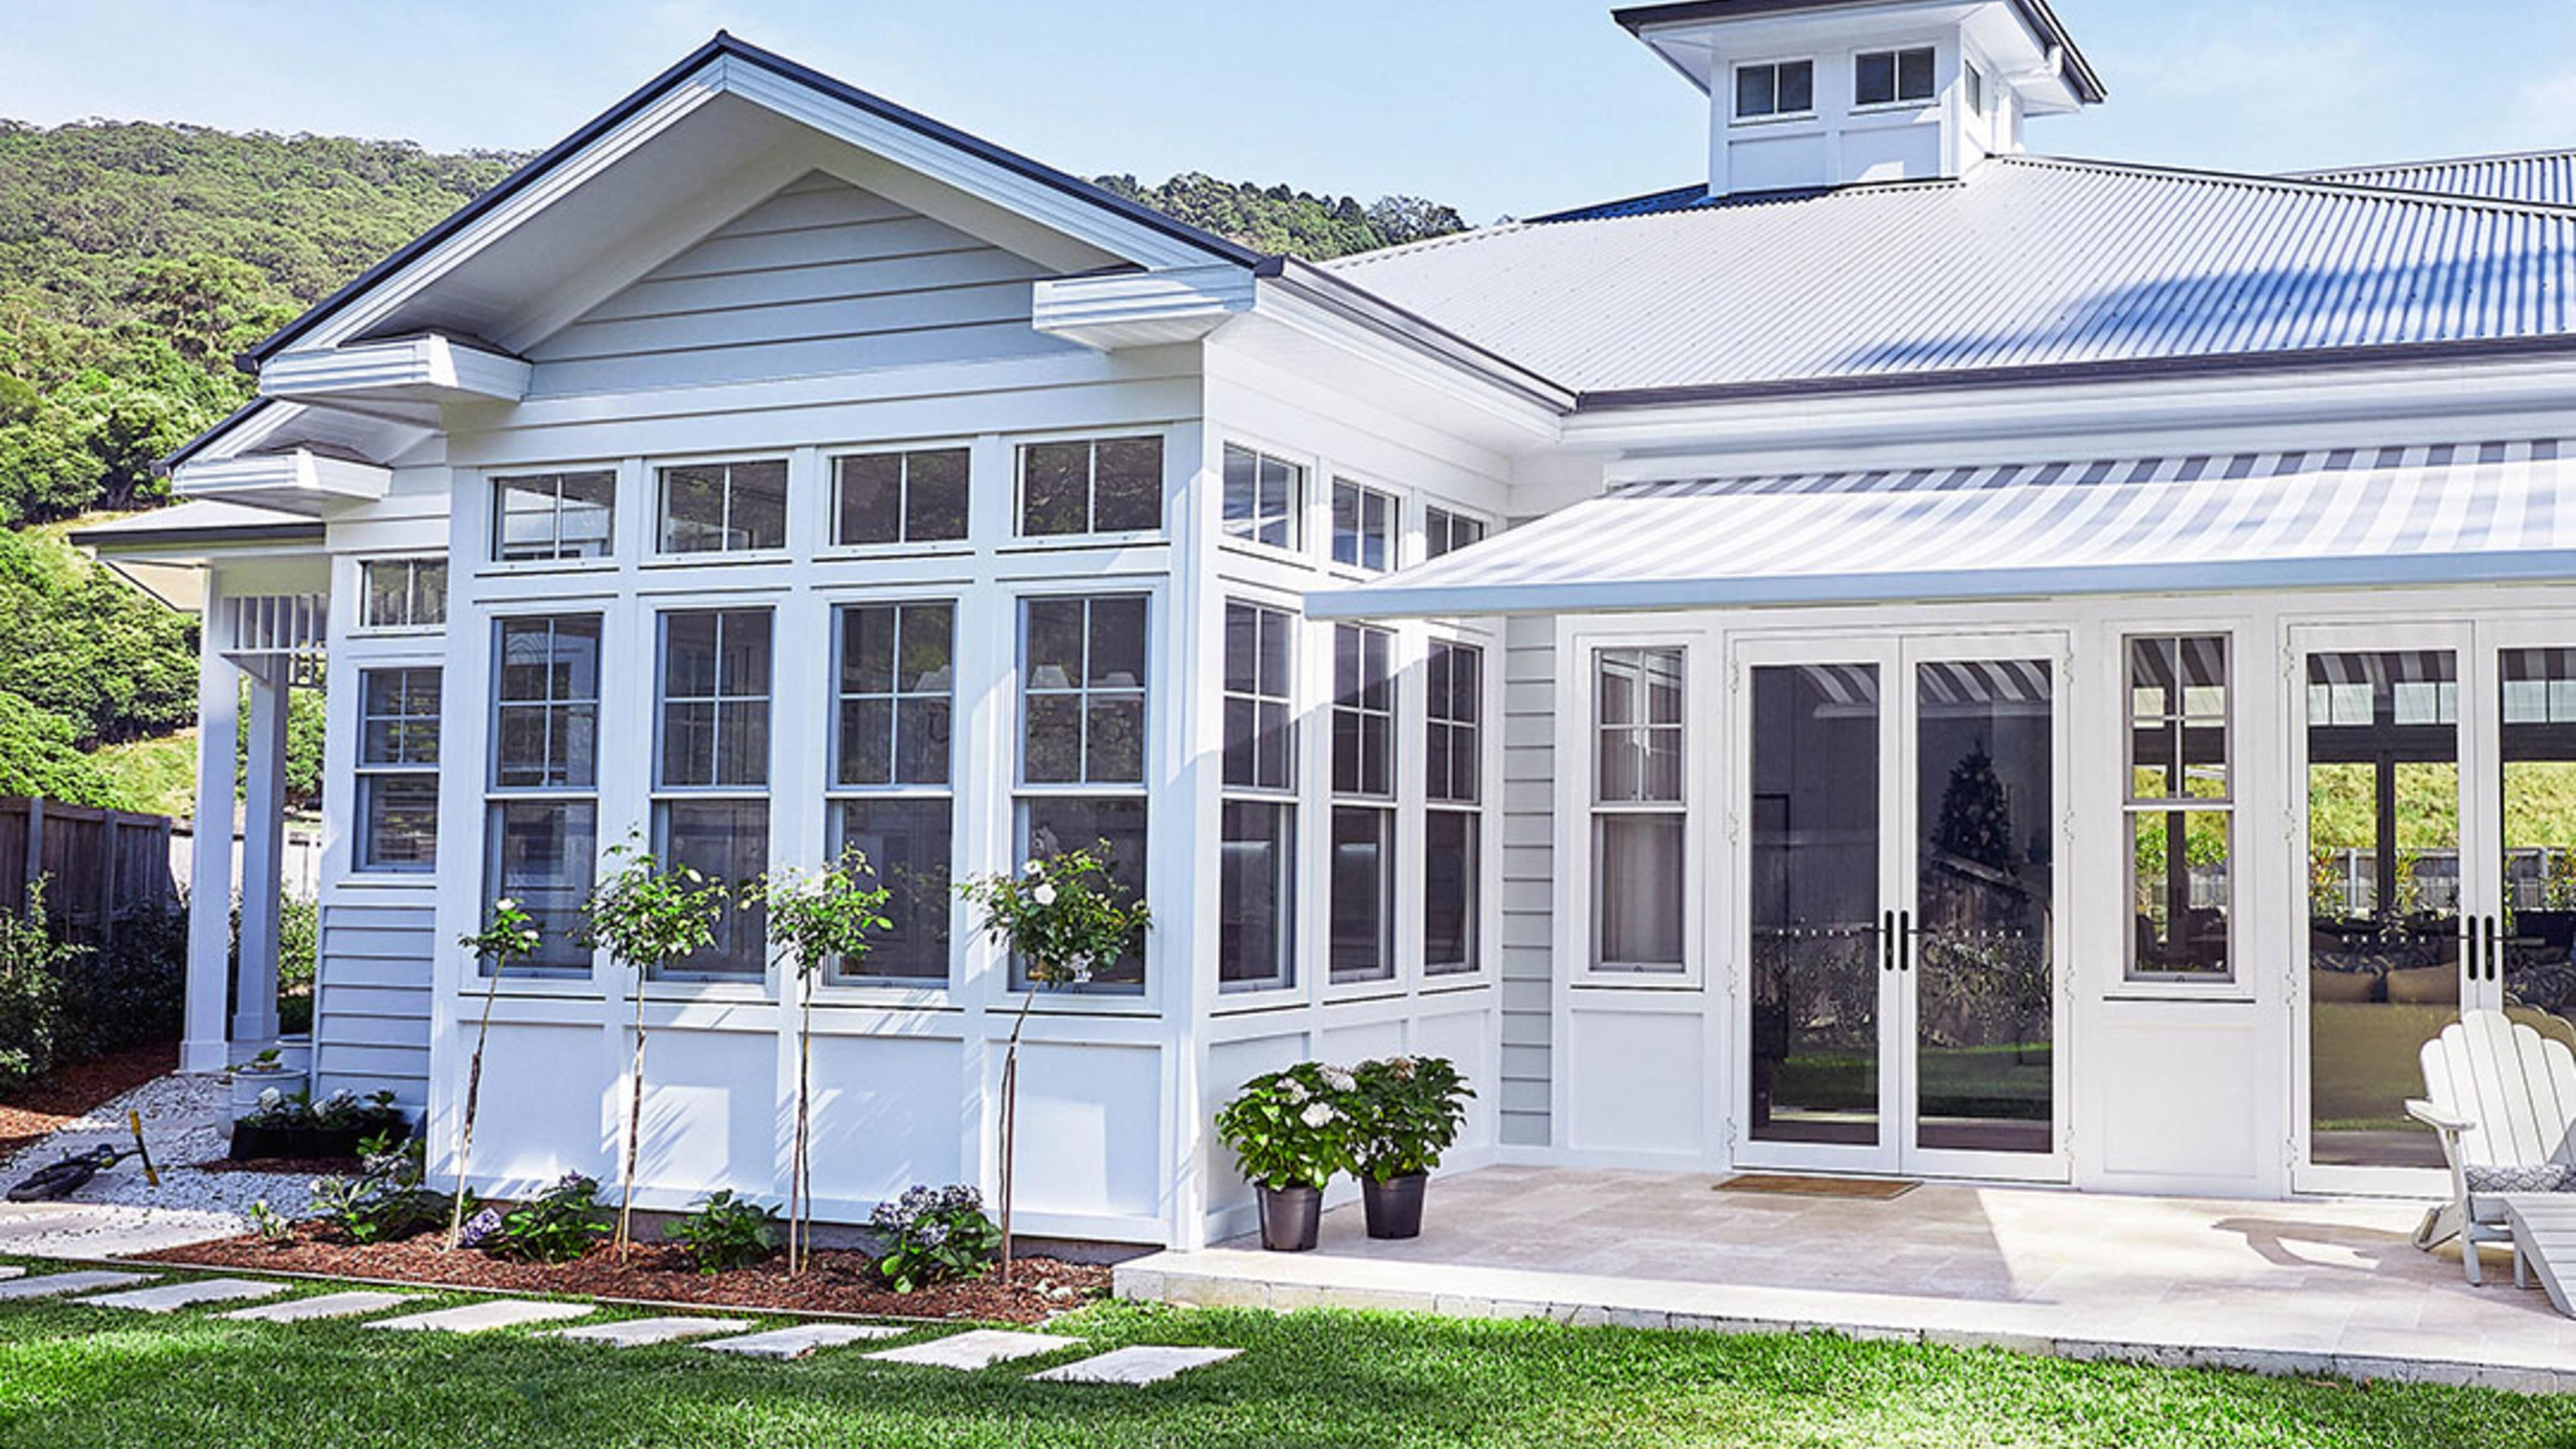 A Hamptons style house with white weatherboards